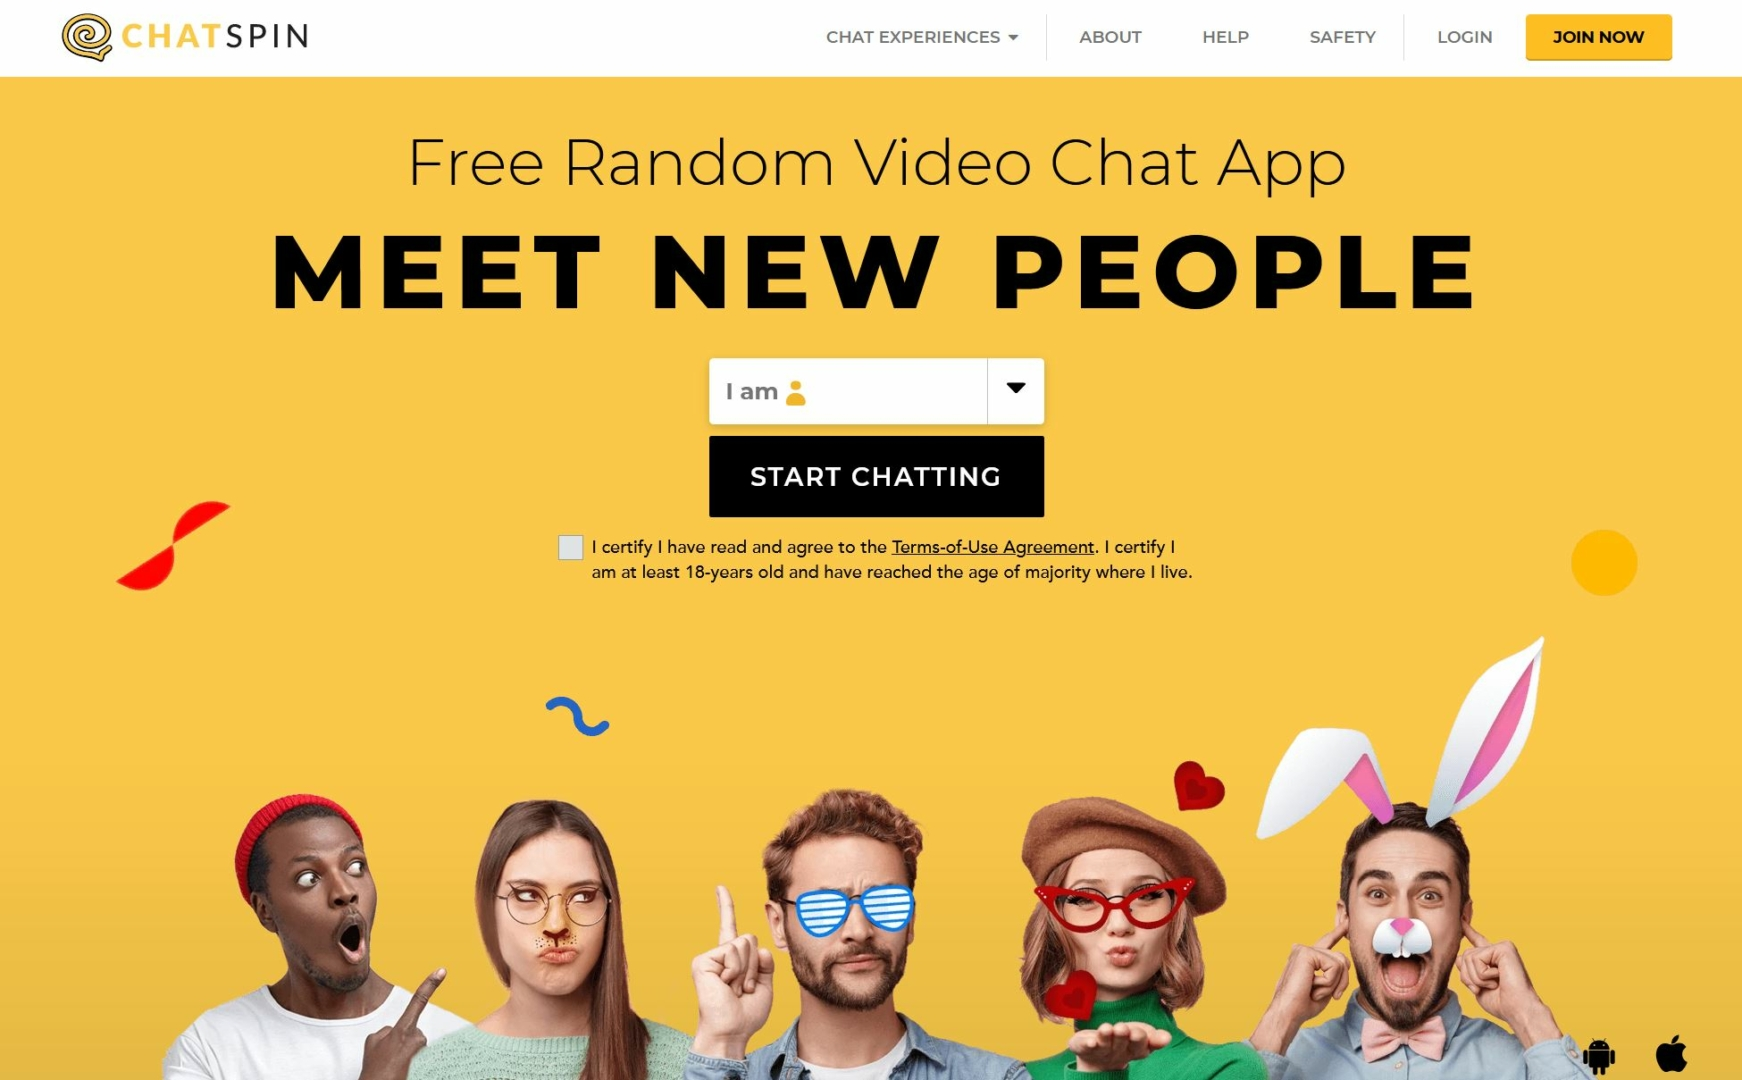 Chatspin is a random Video-Chat